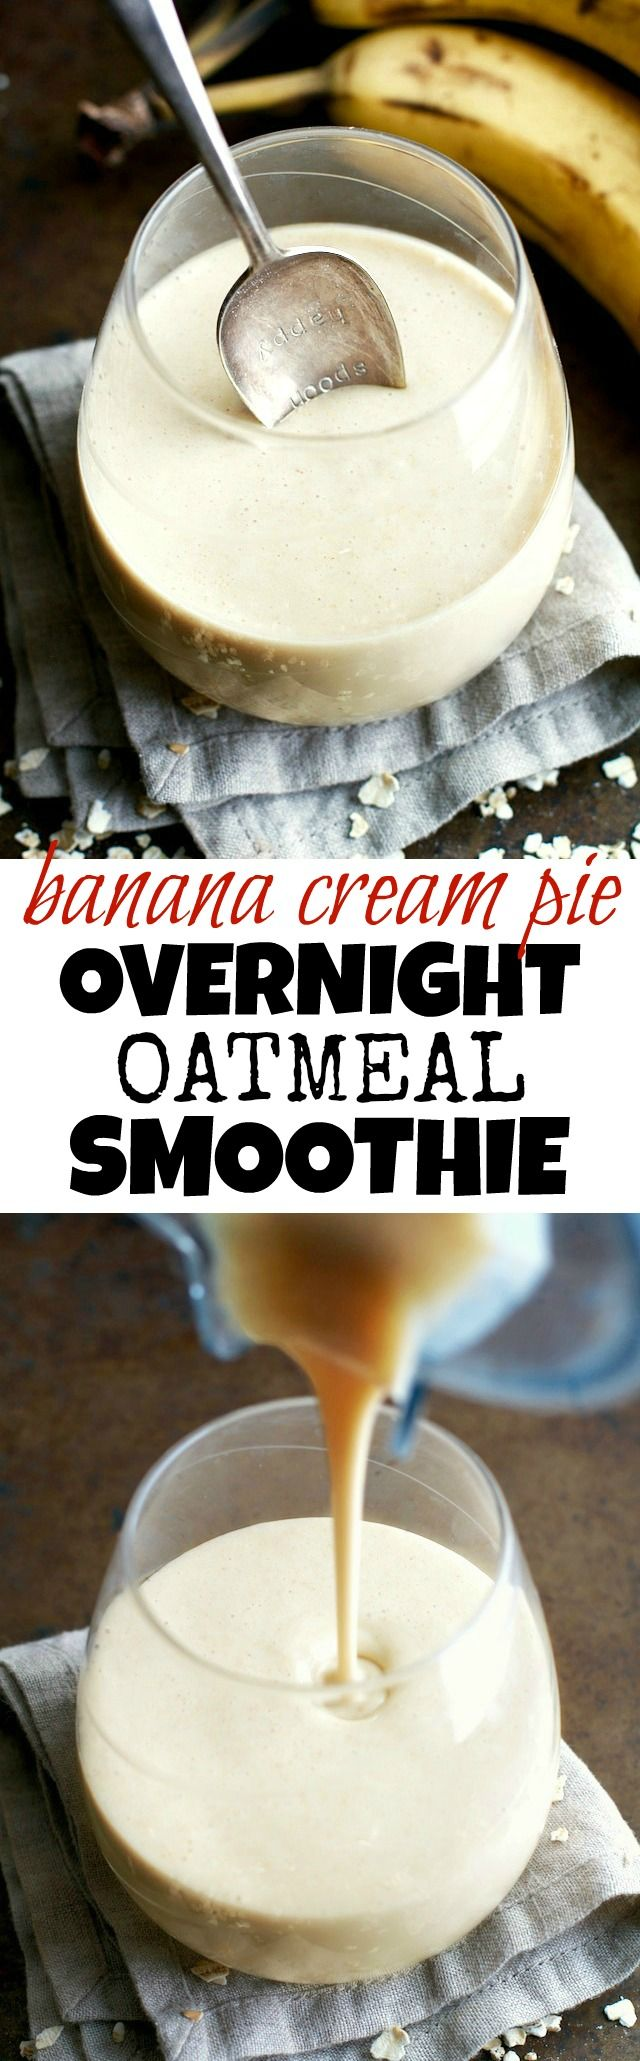 You've never had oatmeal like this before! This thick and creamy Banana Cream Pie Overnight Oatmeal Smoothie combines that stick-to-your-ribs feeling of a bowl of oats with the silky smooth texture of a smoothie!  runningwithspoons.com #vegan #smoothie #healthy #snack